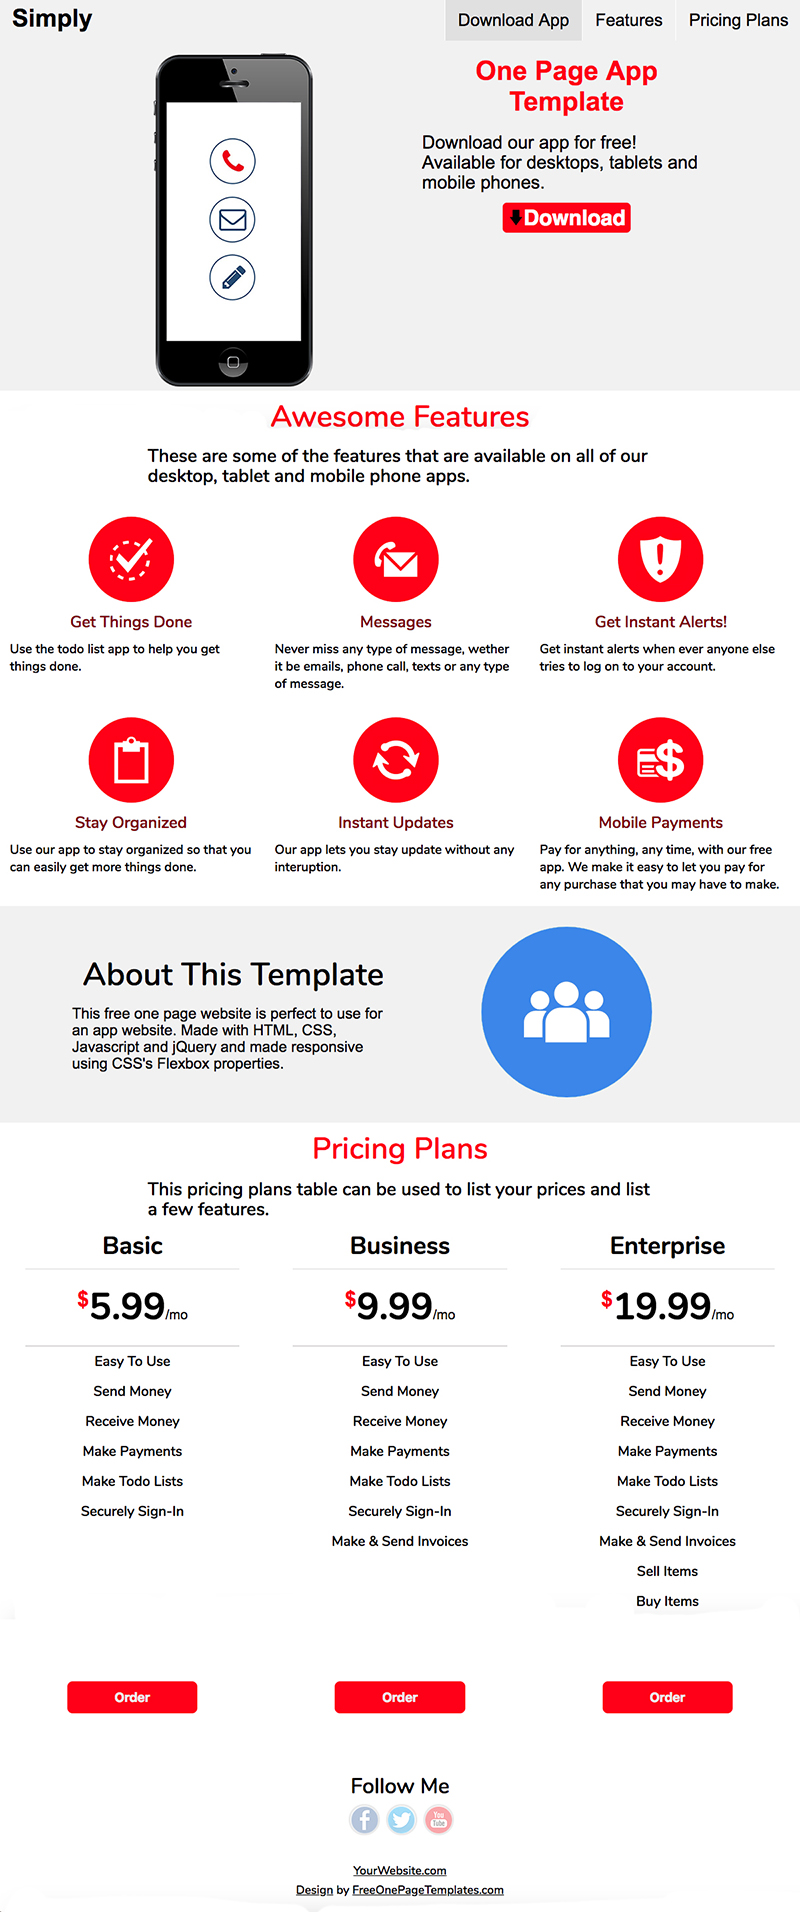 Free One Page App Website Template - Simply